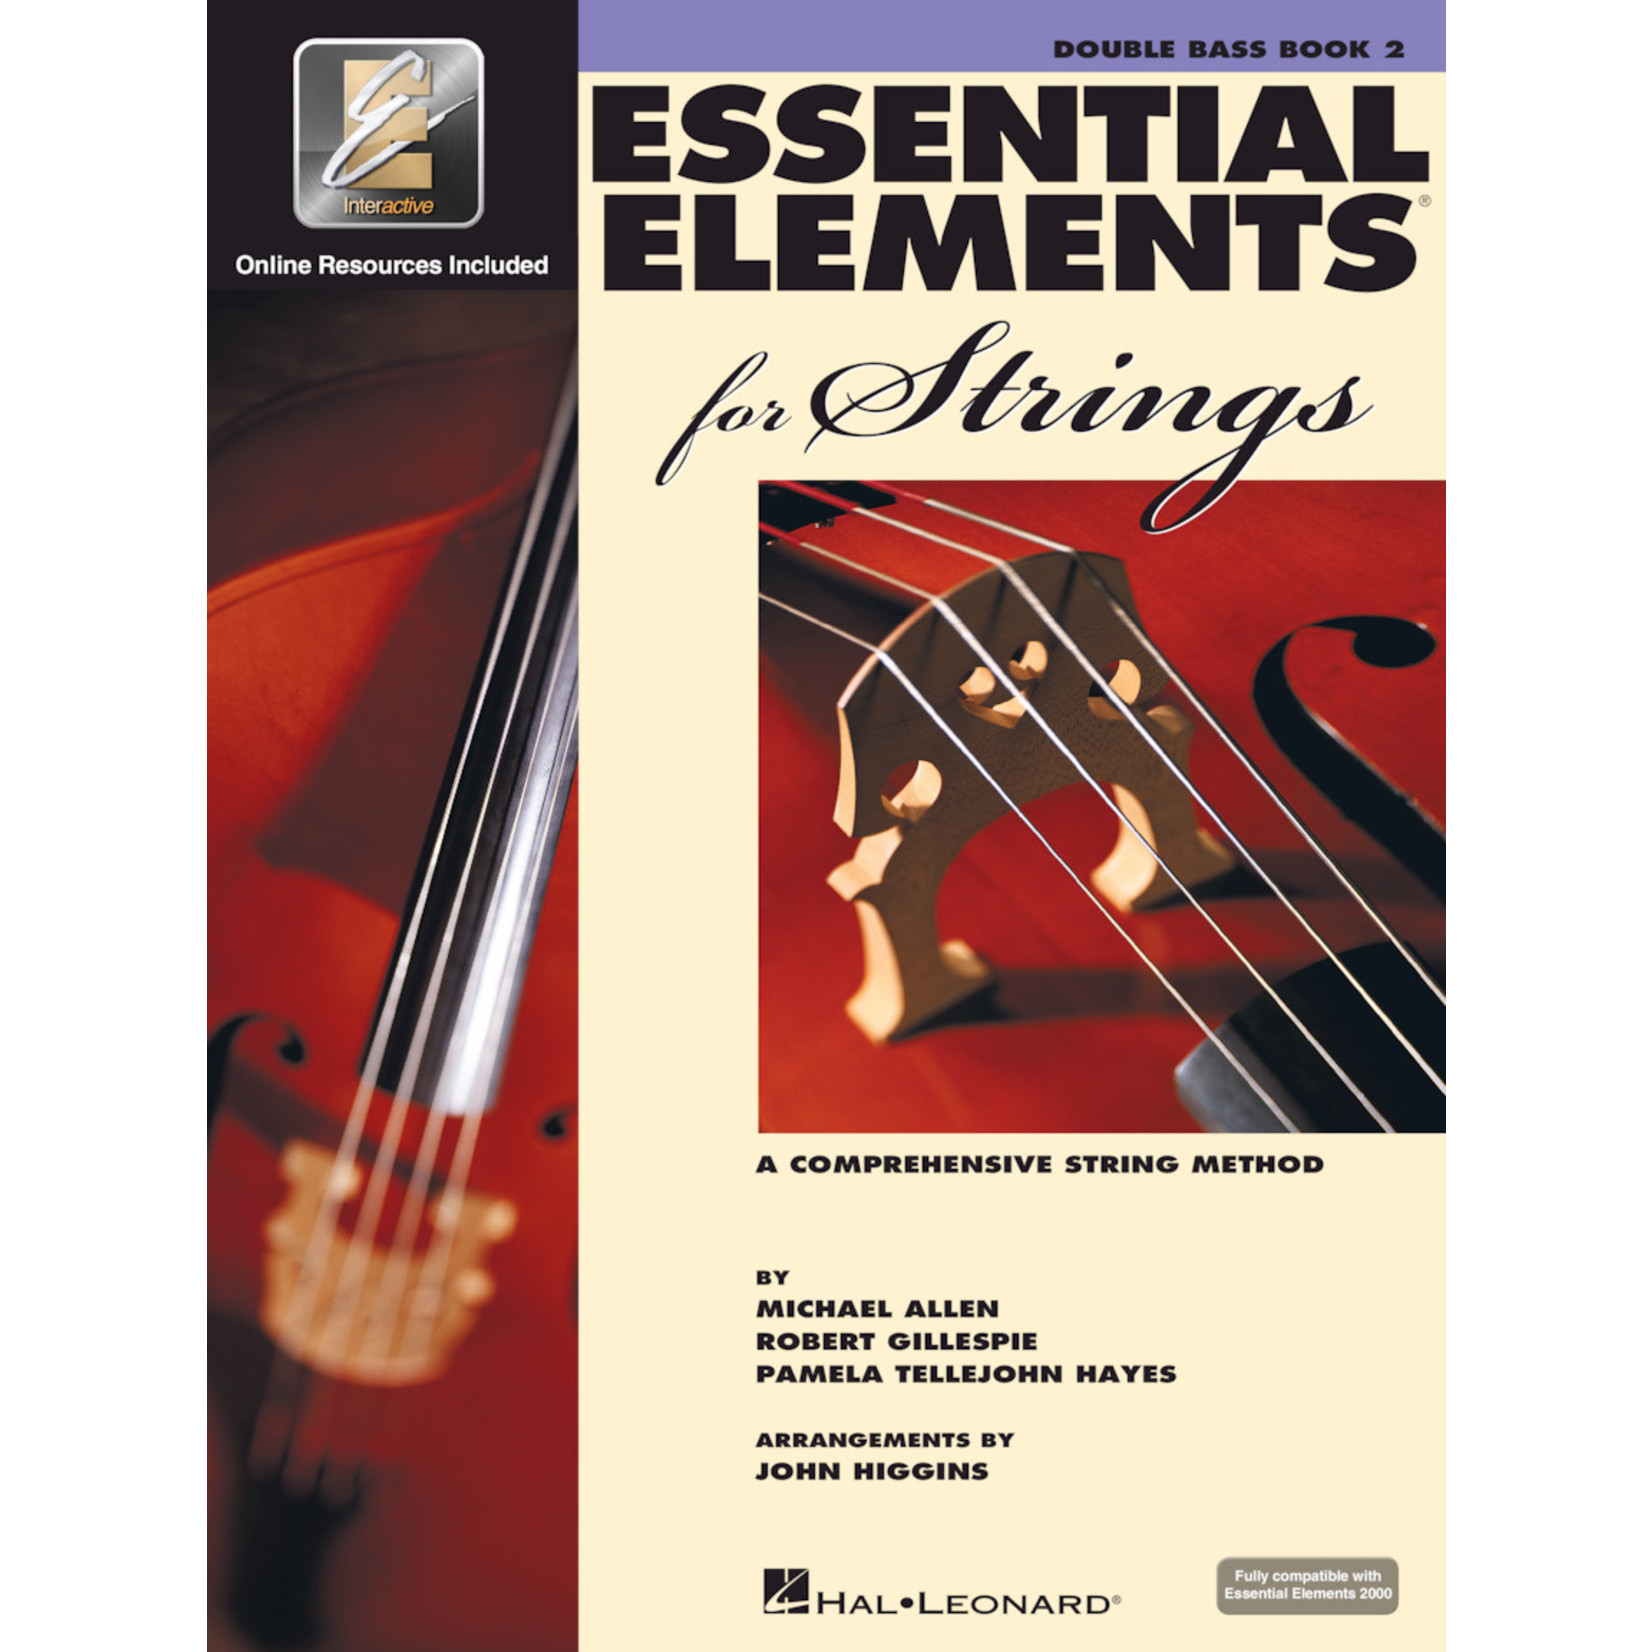 Hal Leonard Essential Elements for Strings Double Bass Book 2